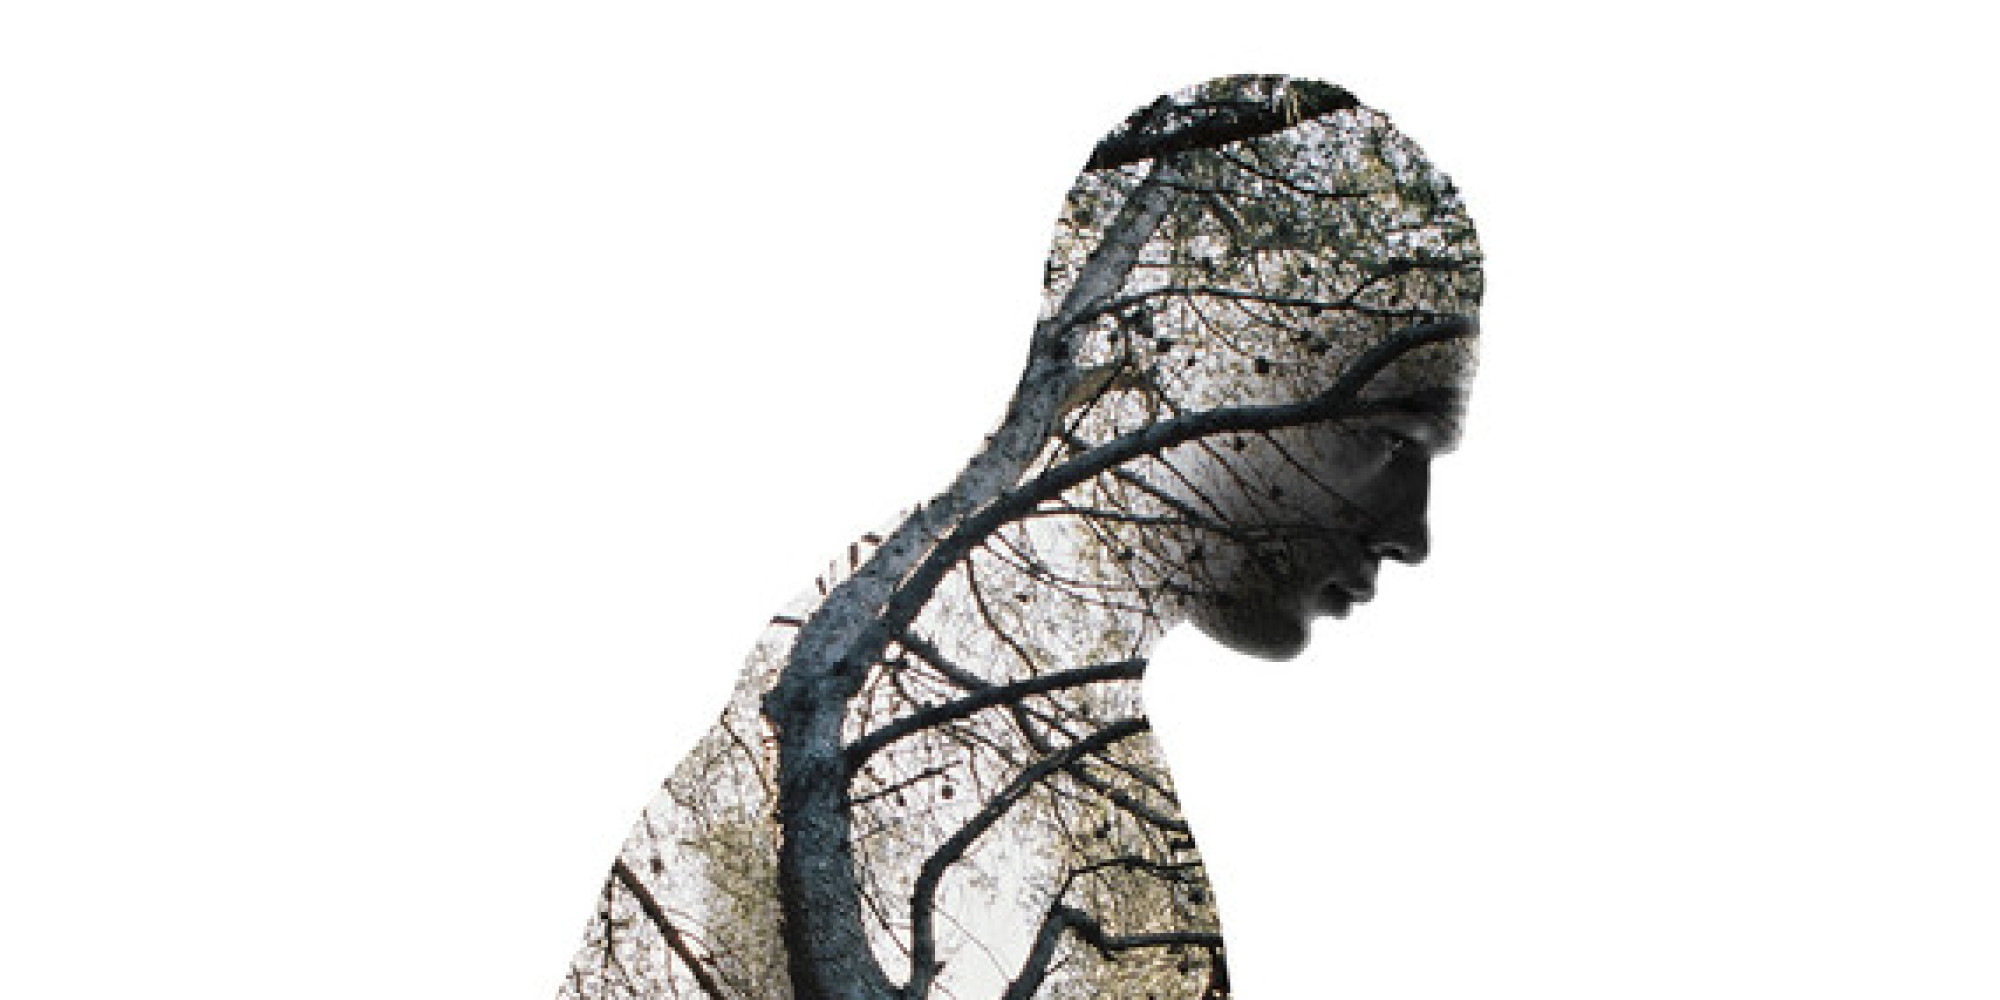 Fine Art Double Exposure Photography Human Nature